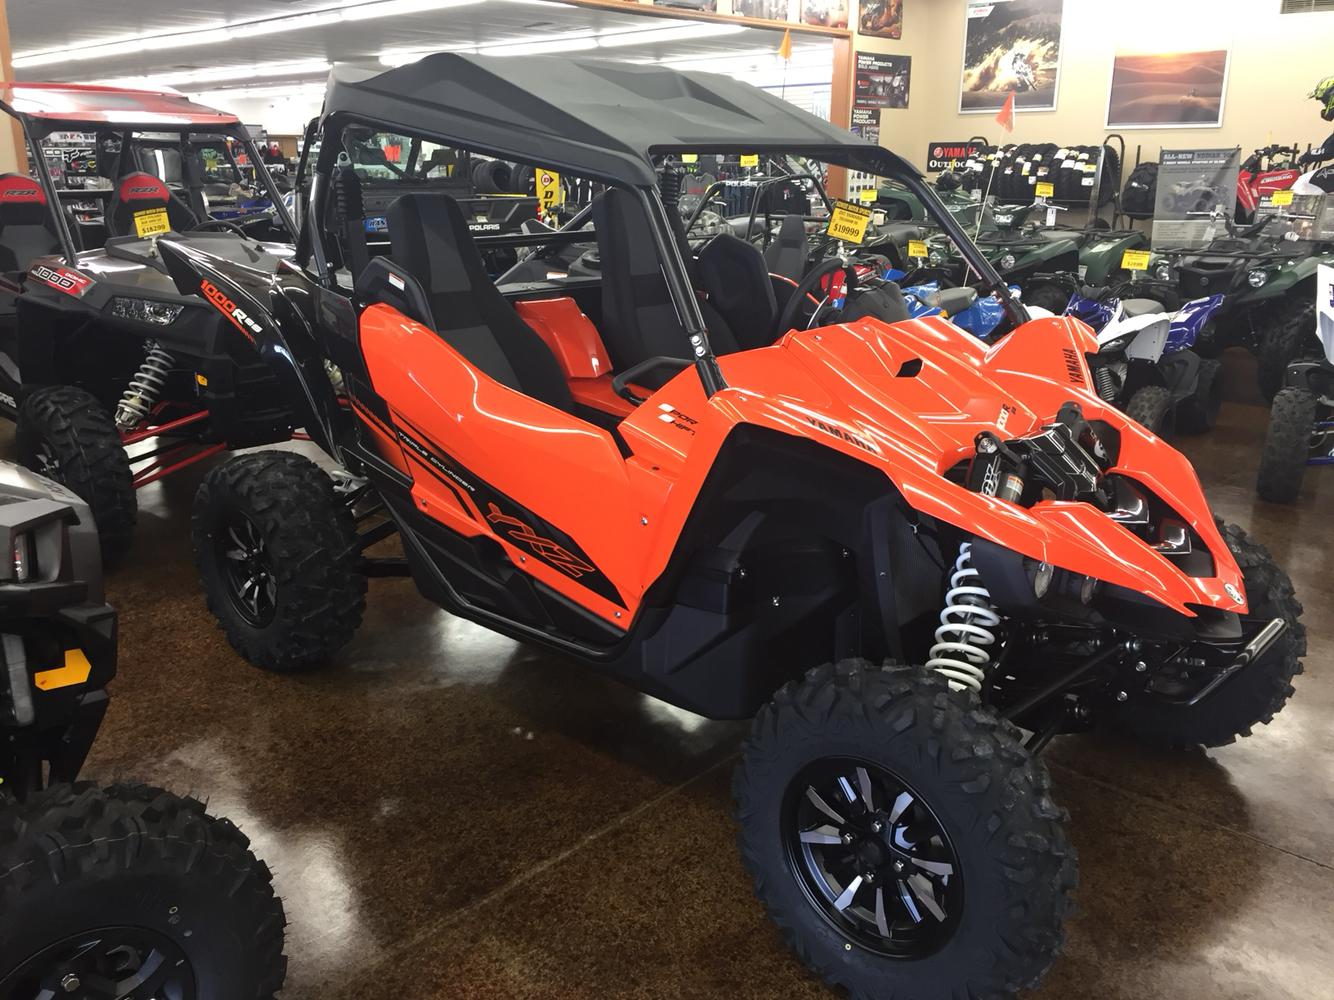 New Inventory Midwest Motor Sports Hartford, IL (618) 251-3902